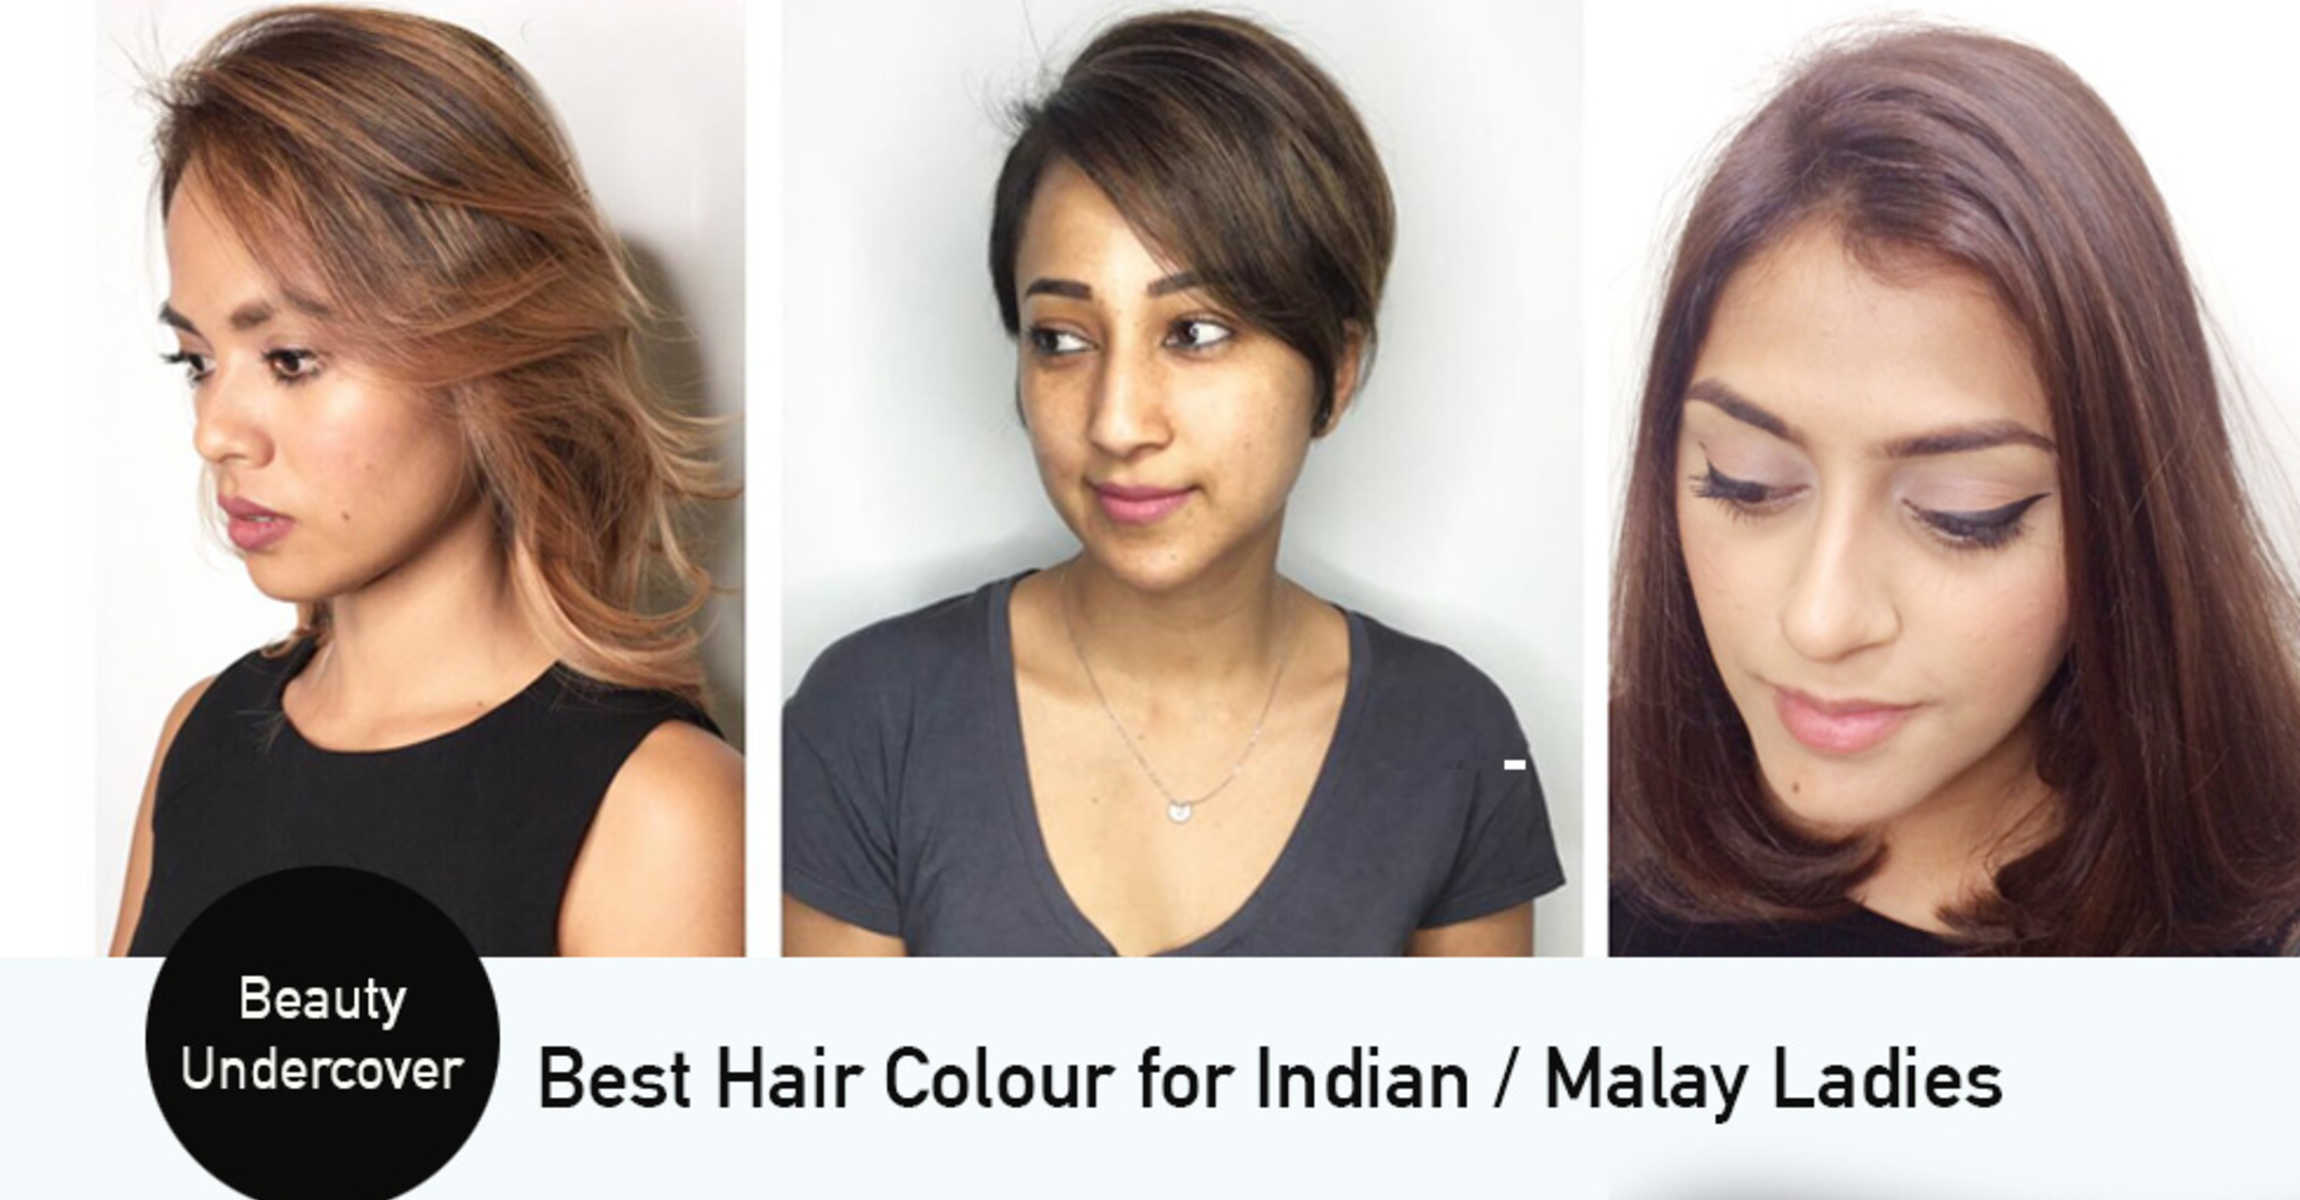 Best Hair Colours For Non Chinese Ladies With Brown Skin Tones